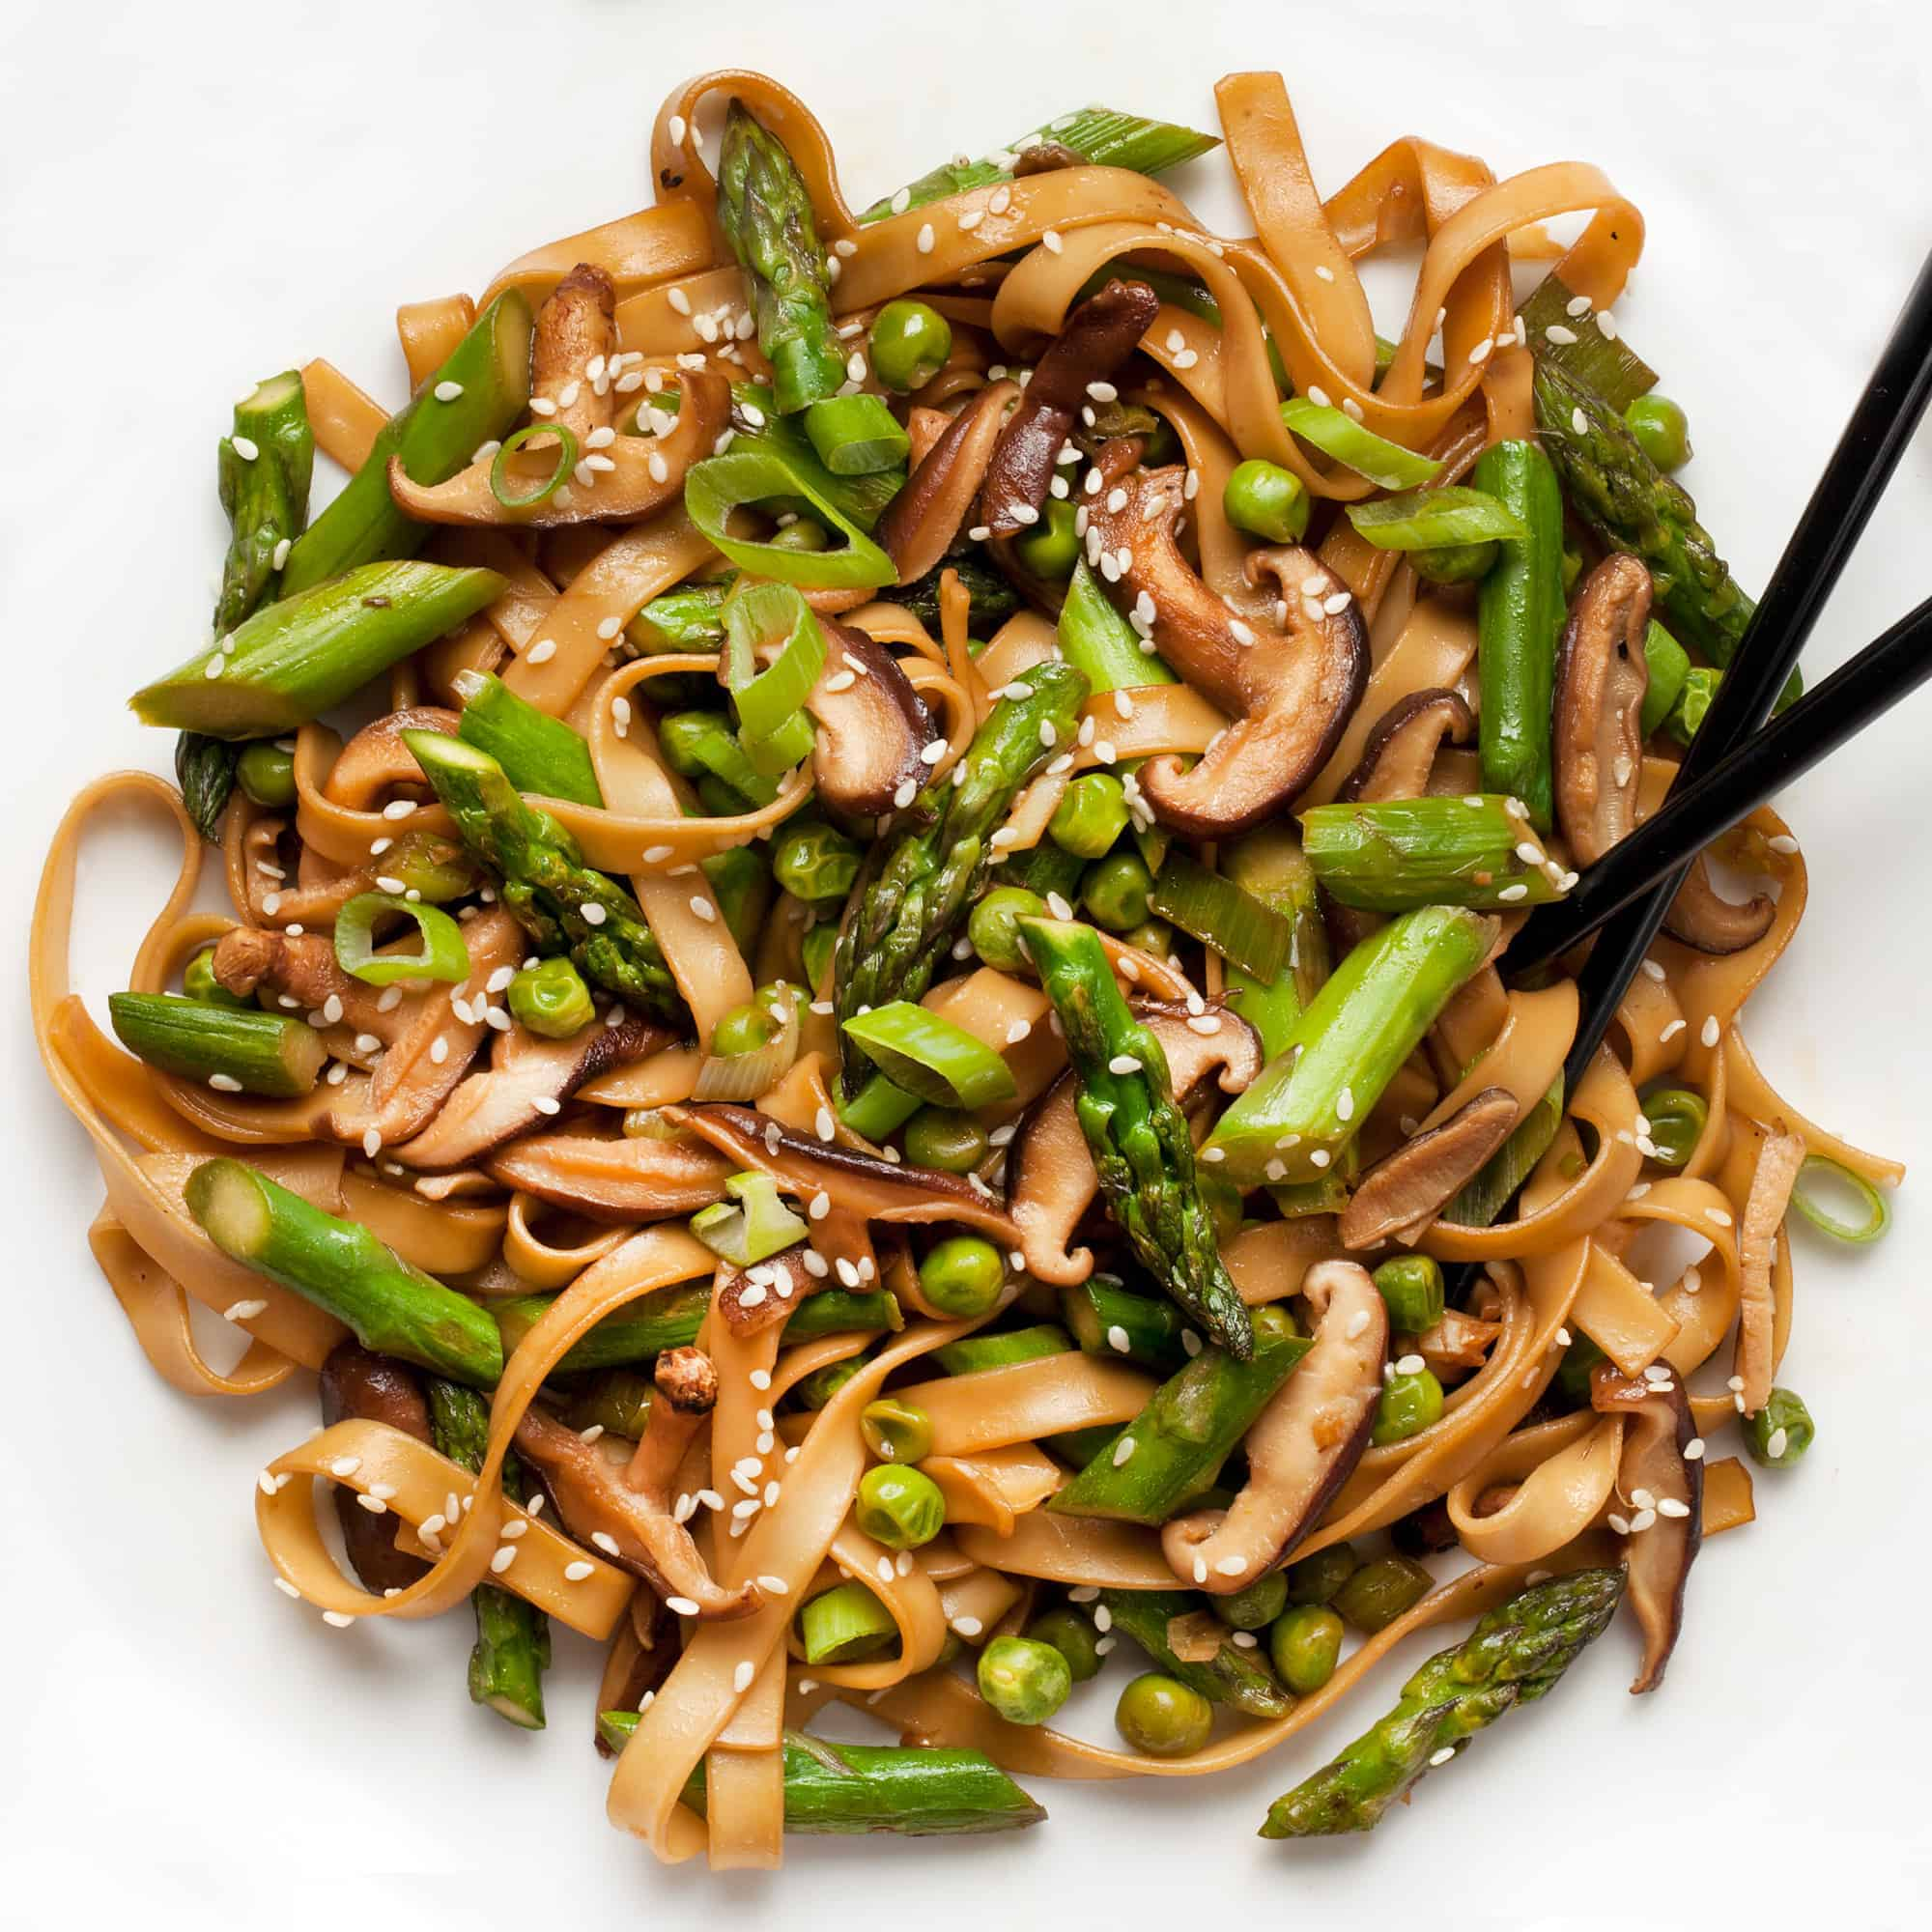 Udon Noodle Stir-Fry with Asparagus, Mushrooms & Peas